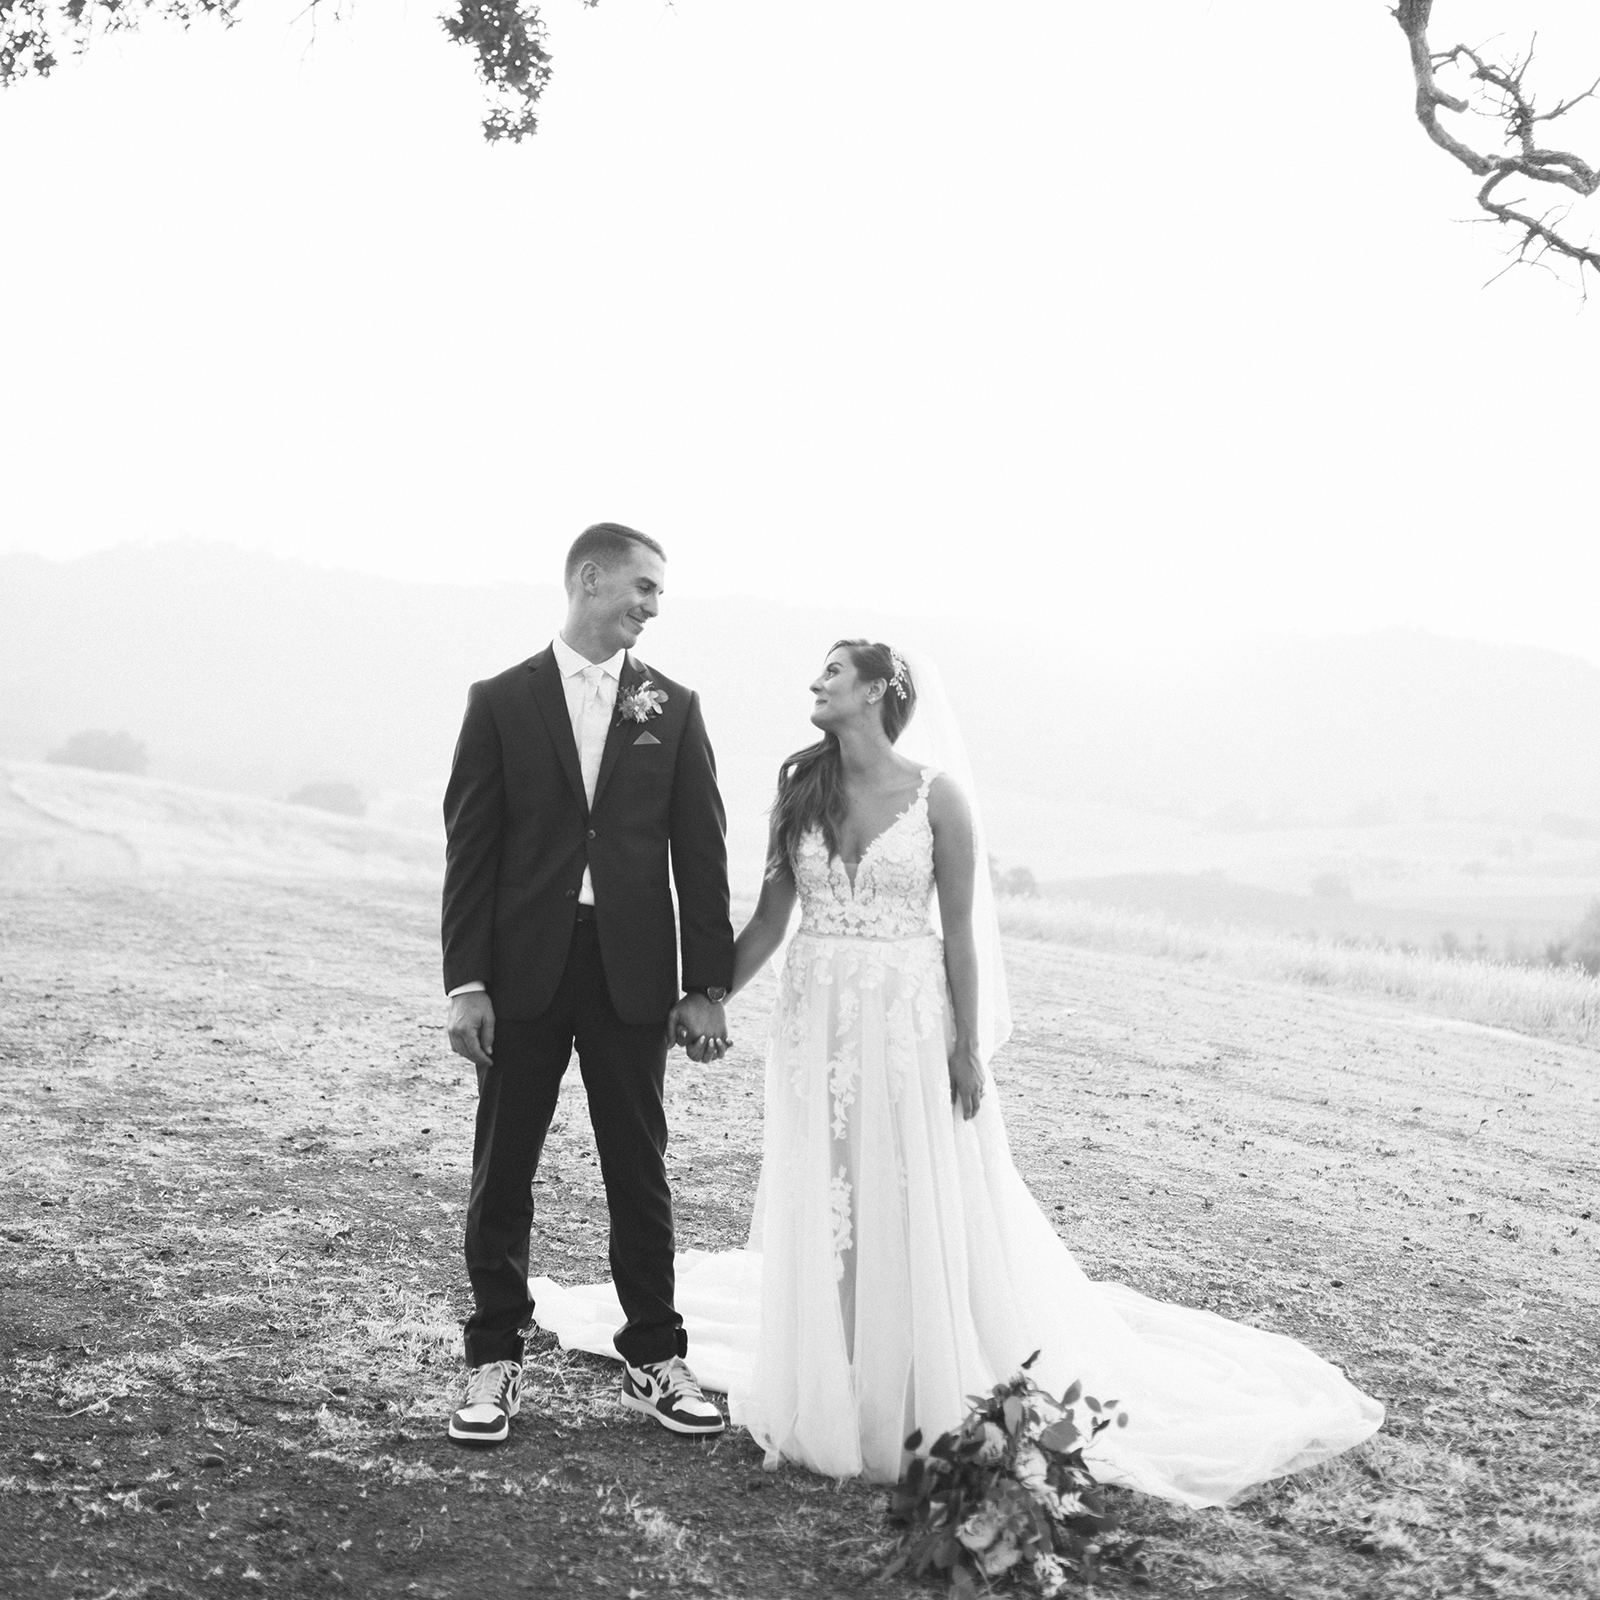 Nicole + Kory's Woodland Wedding by Valley Images Photography at Taber Ranch